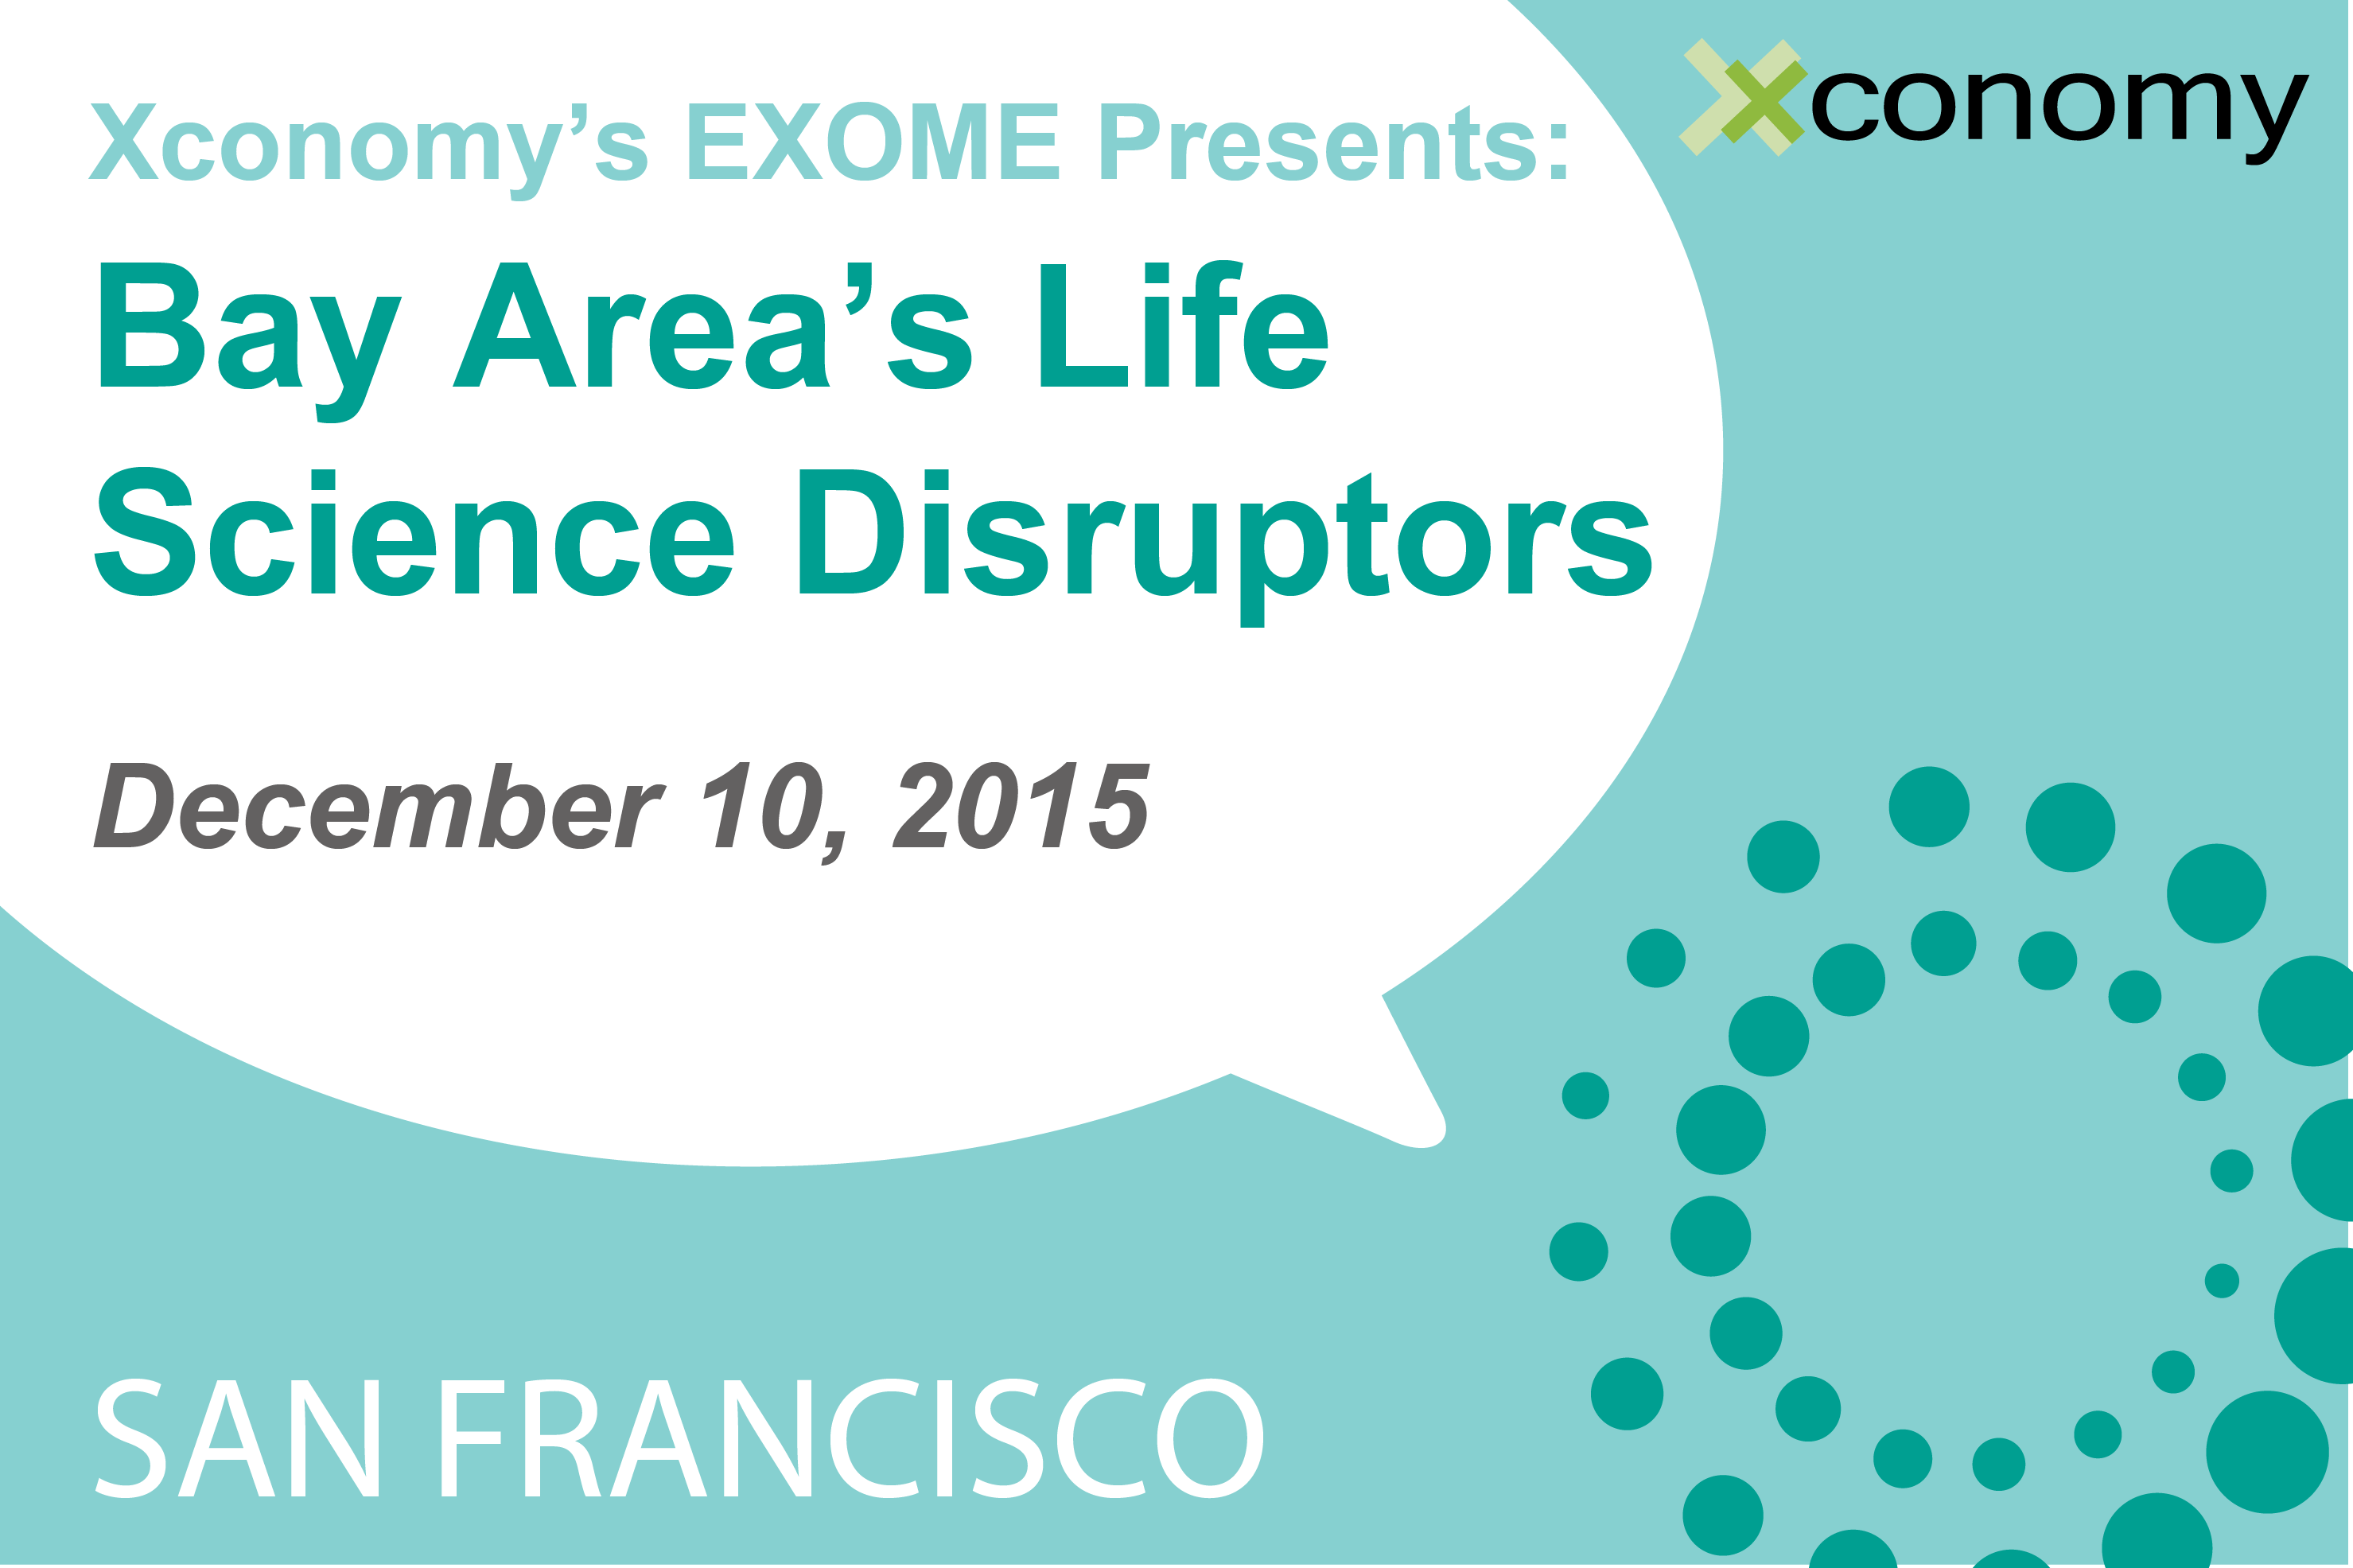 Bay Area's Life Science Disruptors